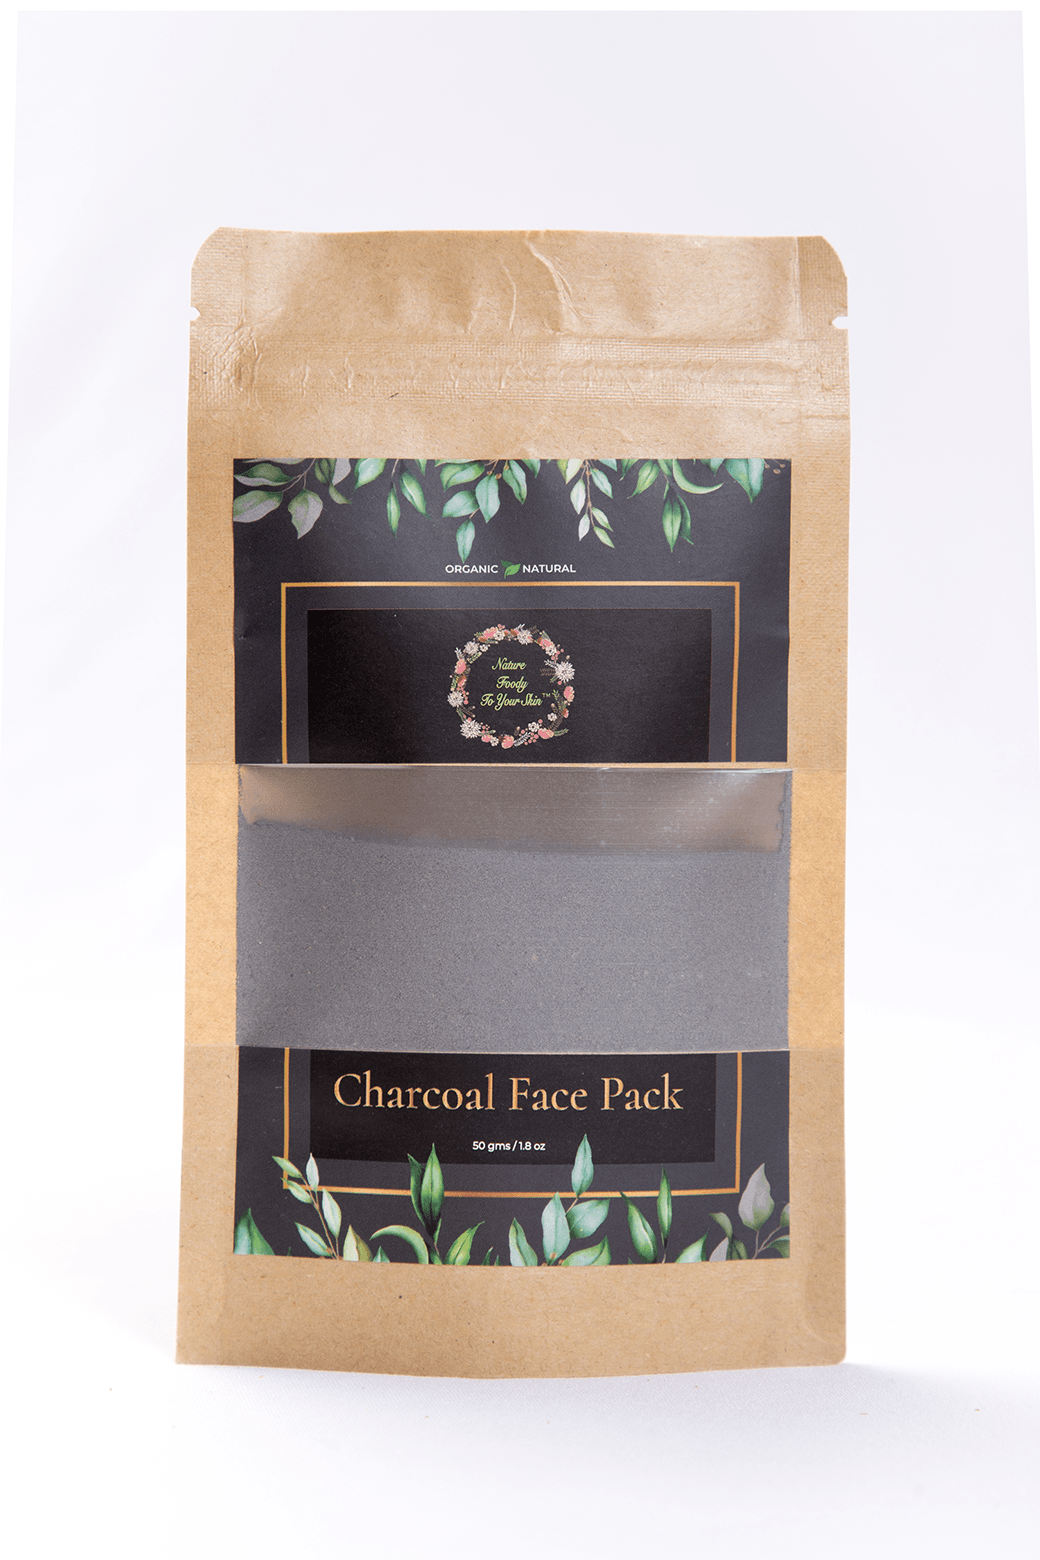 Charcoal Face Pack 50g